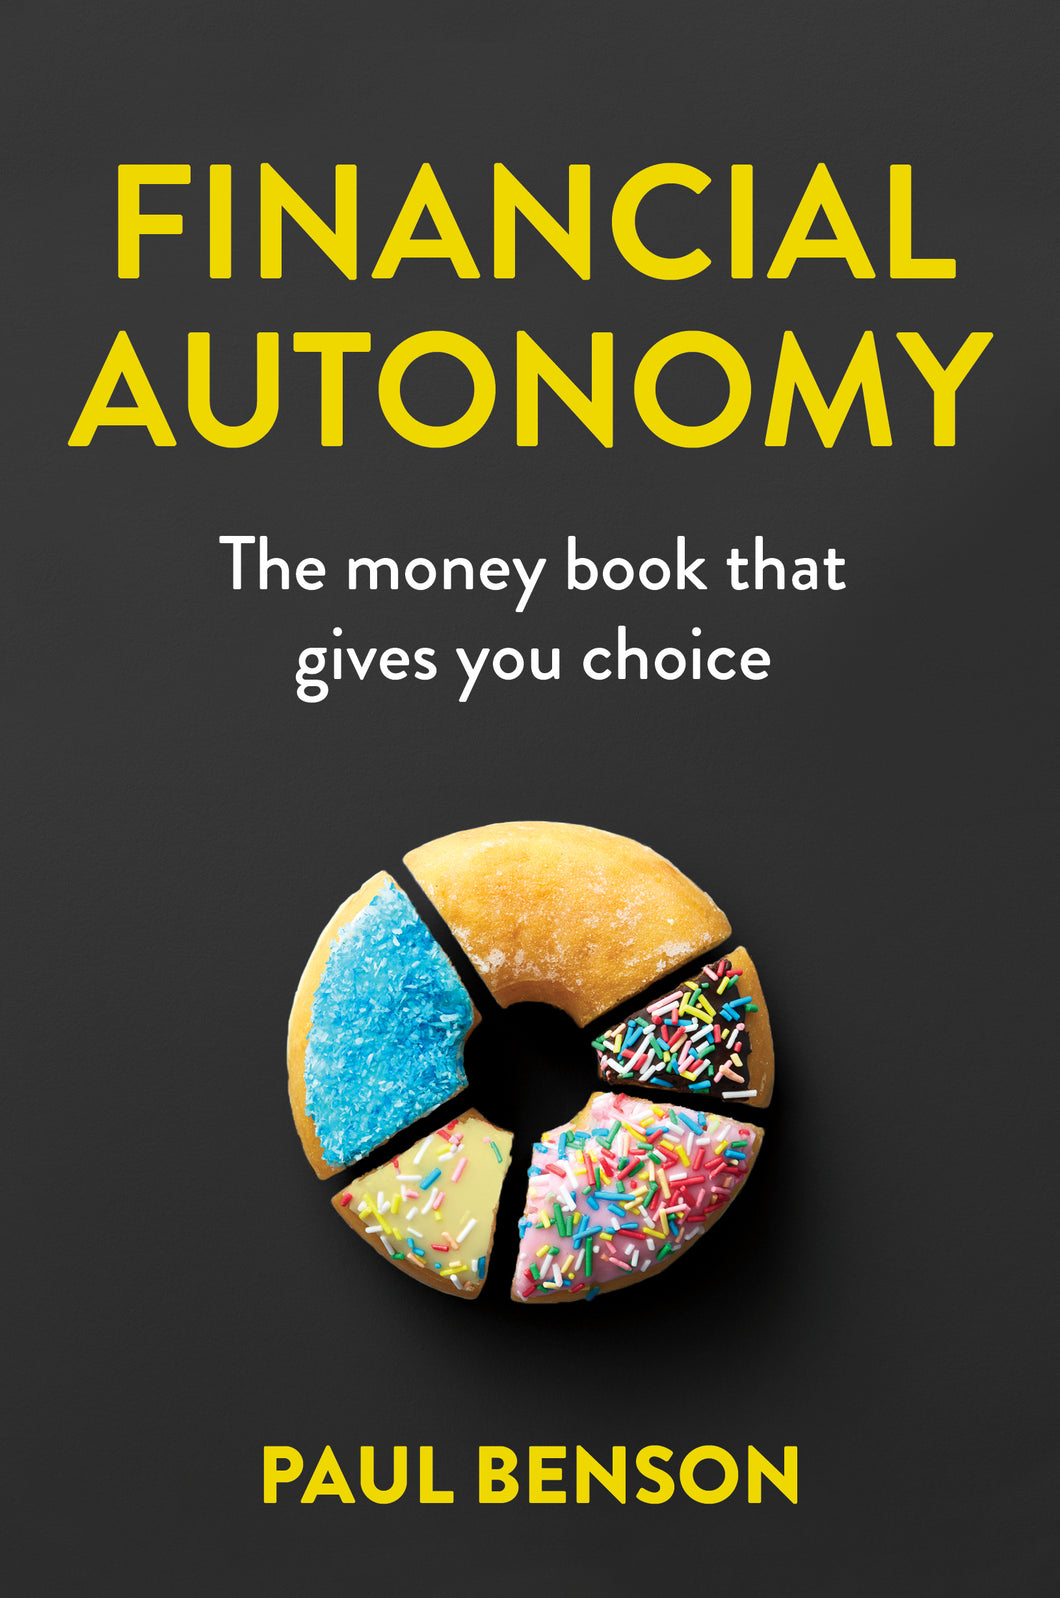 Financial Autonomy<br><i><small>by Paul Benson</i> </small>